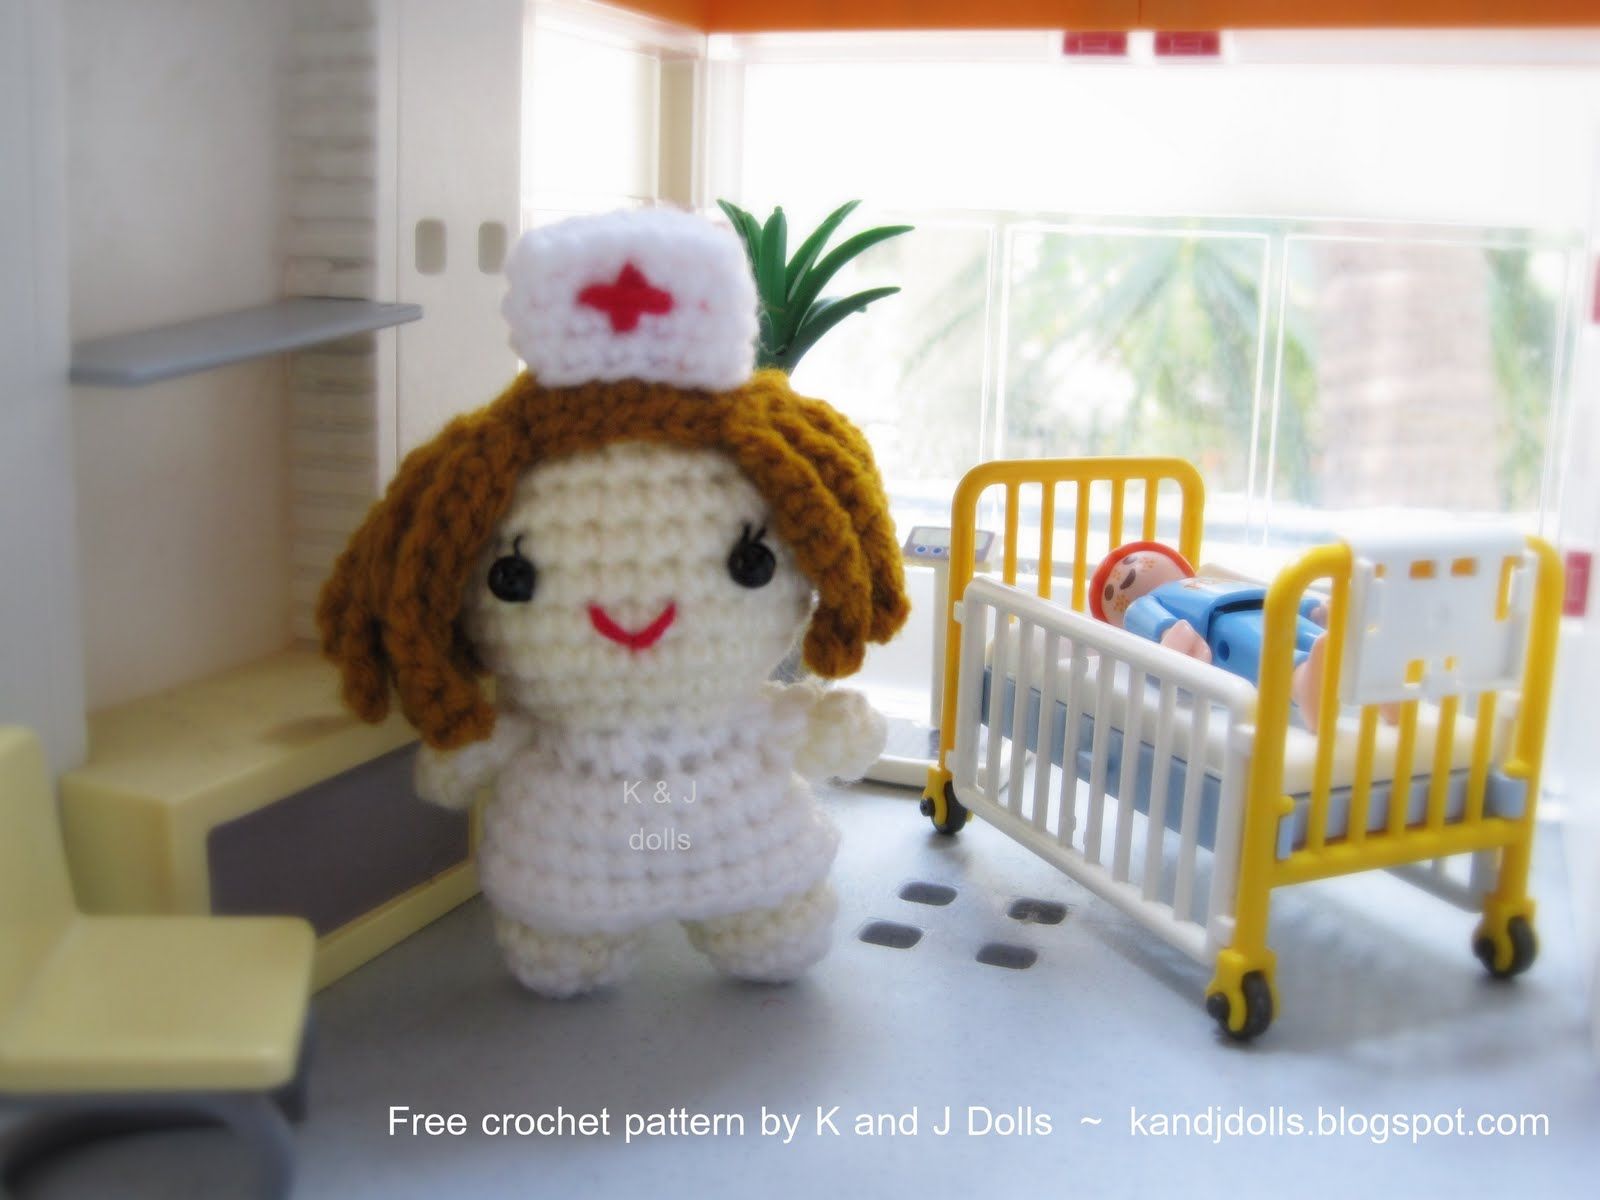 Free Amigurumi Patterns In English : Free English Crochet Patterns Amigurumi submited images.